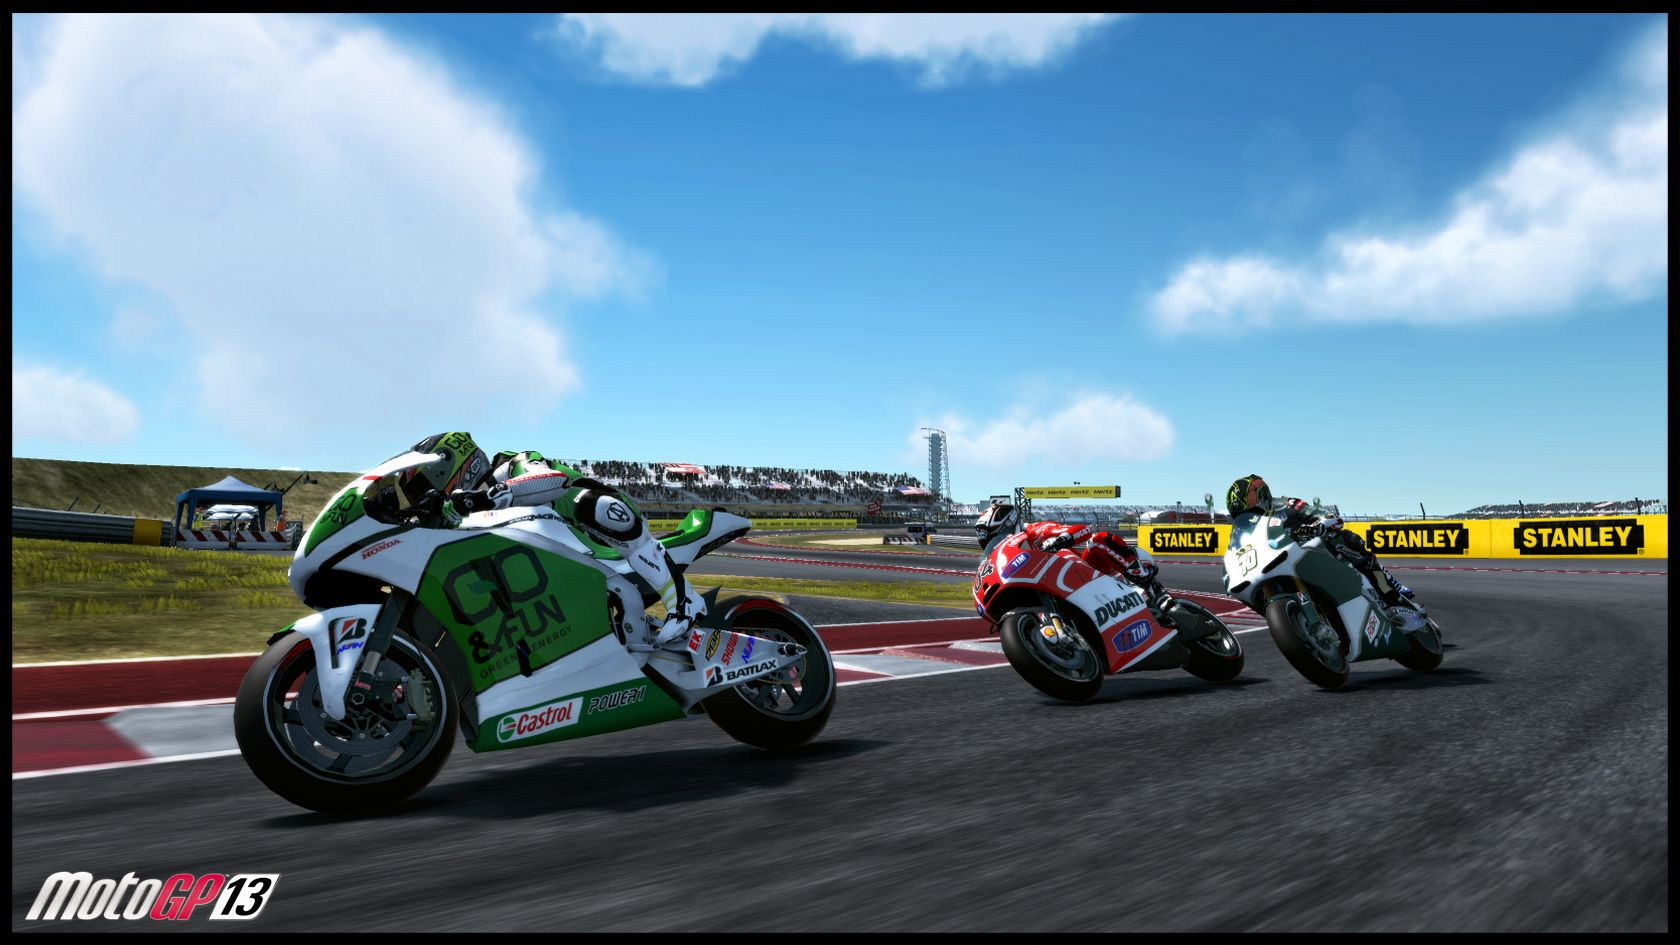 Motogp 2013 Full Version